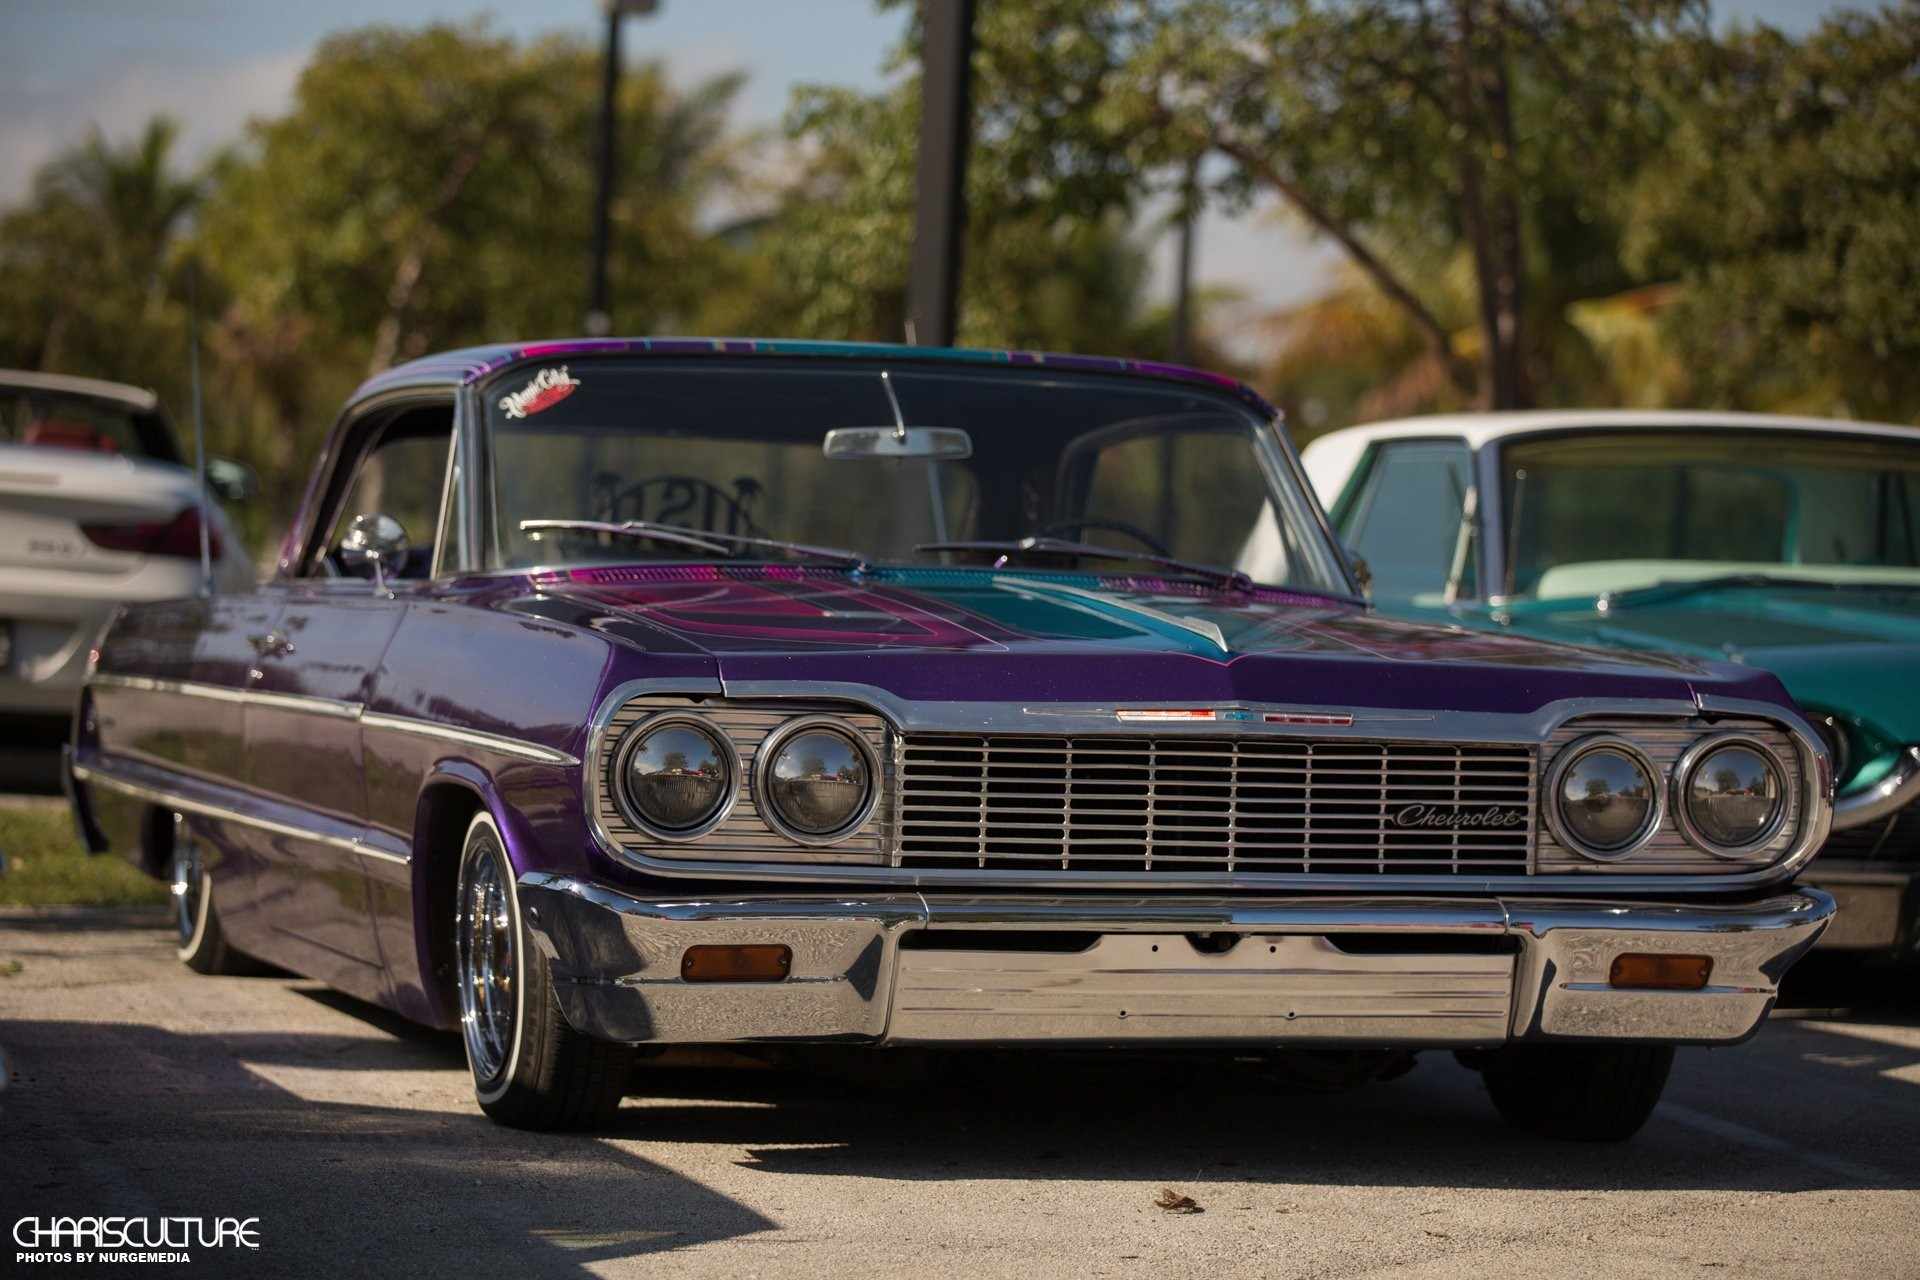 1920x1280 Top 10 1964 Chevrolet Impala Features Lowrider ...